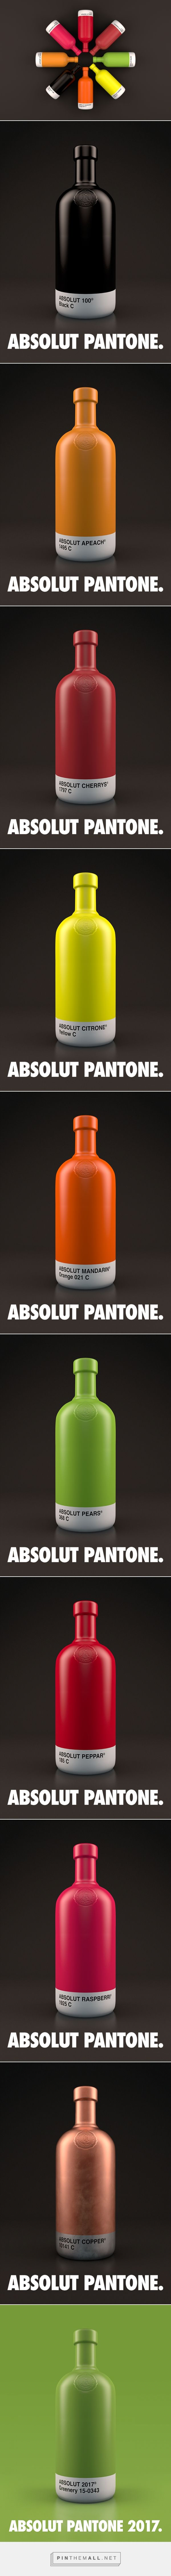 Absolut Pantone packaging design concept by Txaber - http://www.packagingoftheworld.com/2017/01/absolut-pantone.html